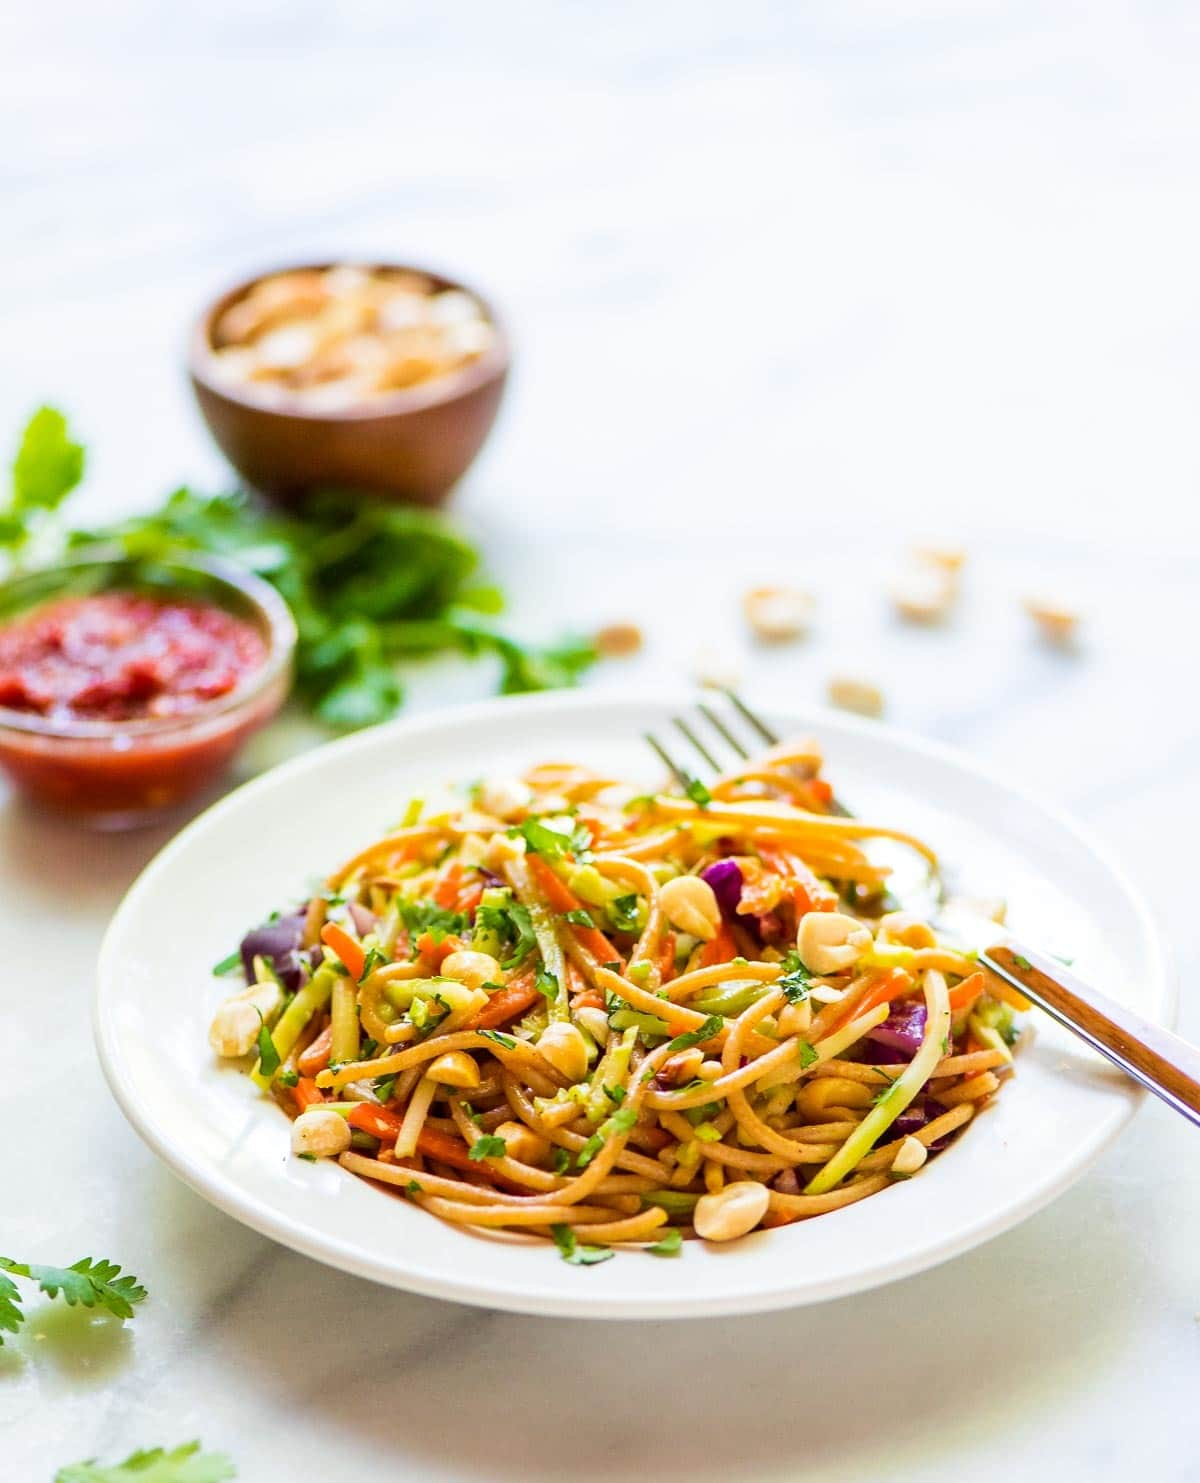 Asian noodle peanut salad